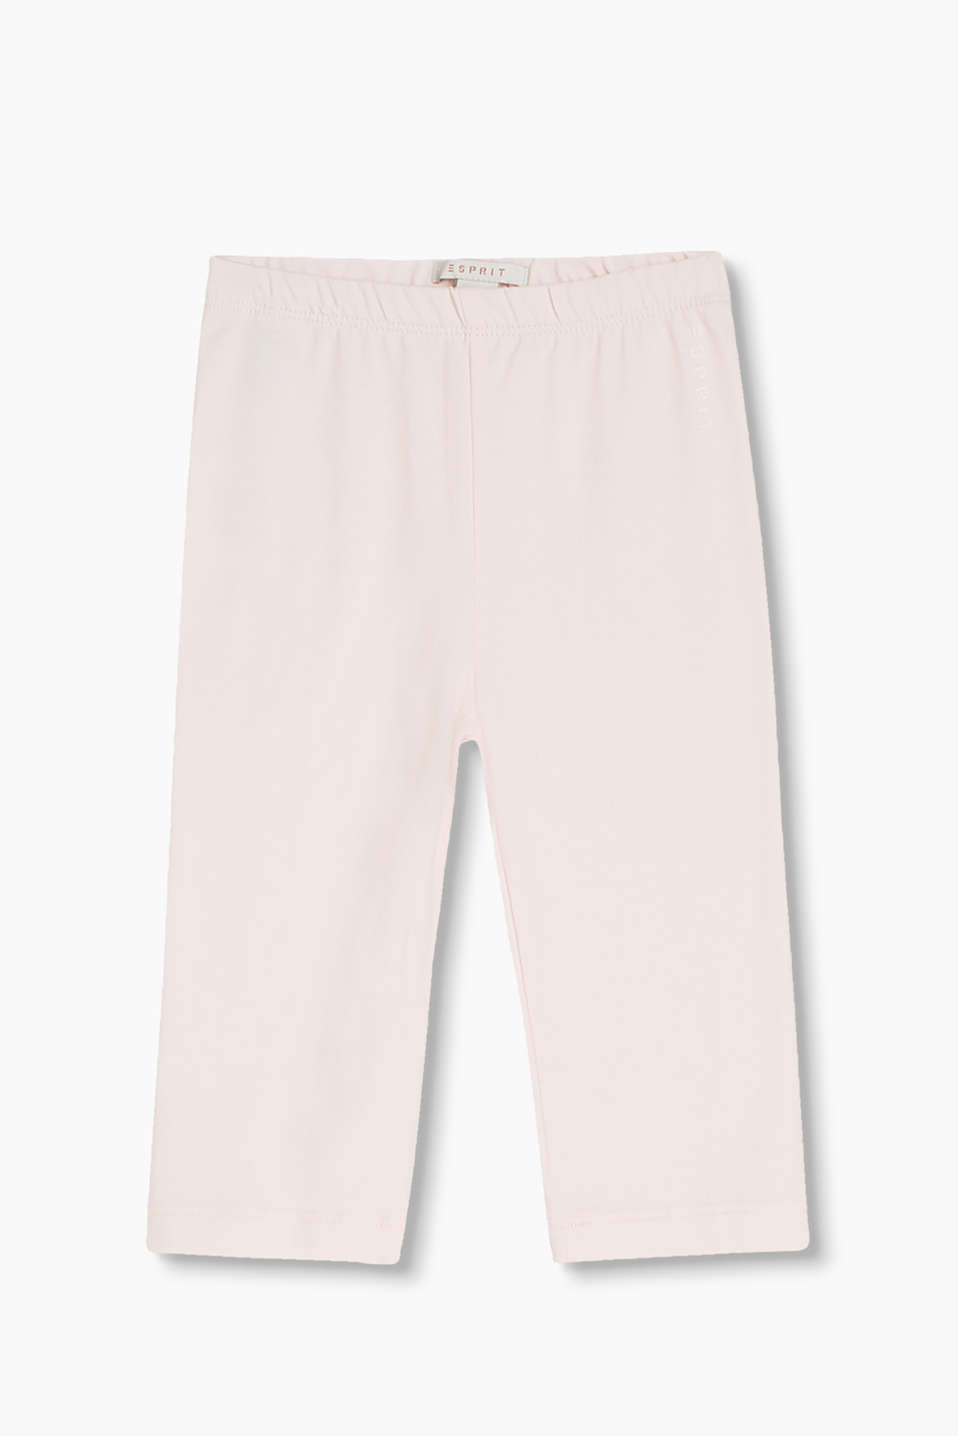 Basic Capri leggings made of plain cotton-jersey with a percentage of elastane